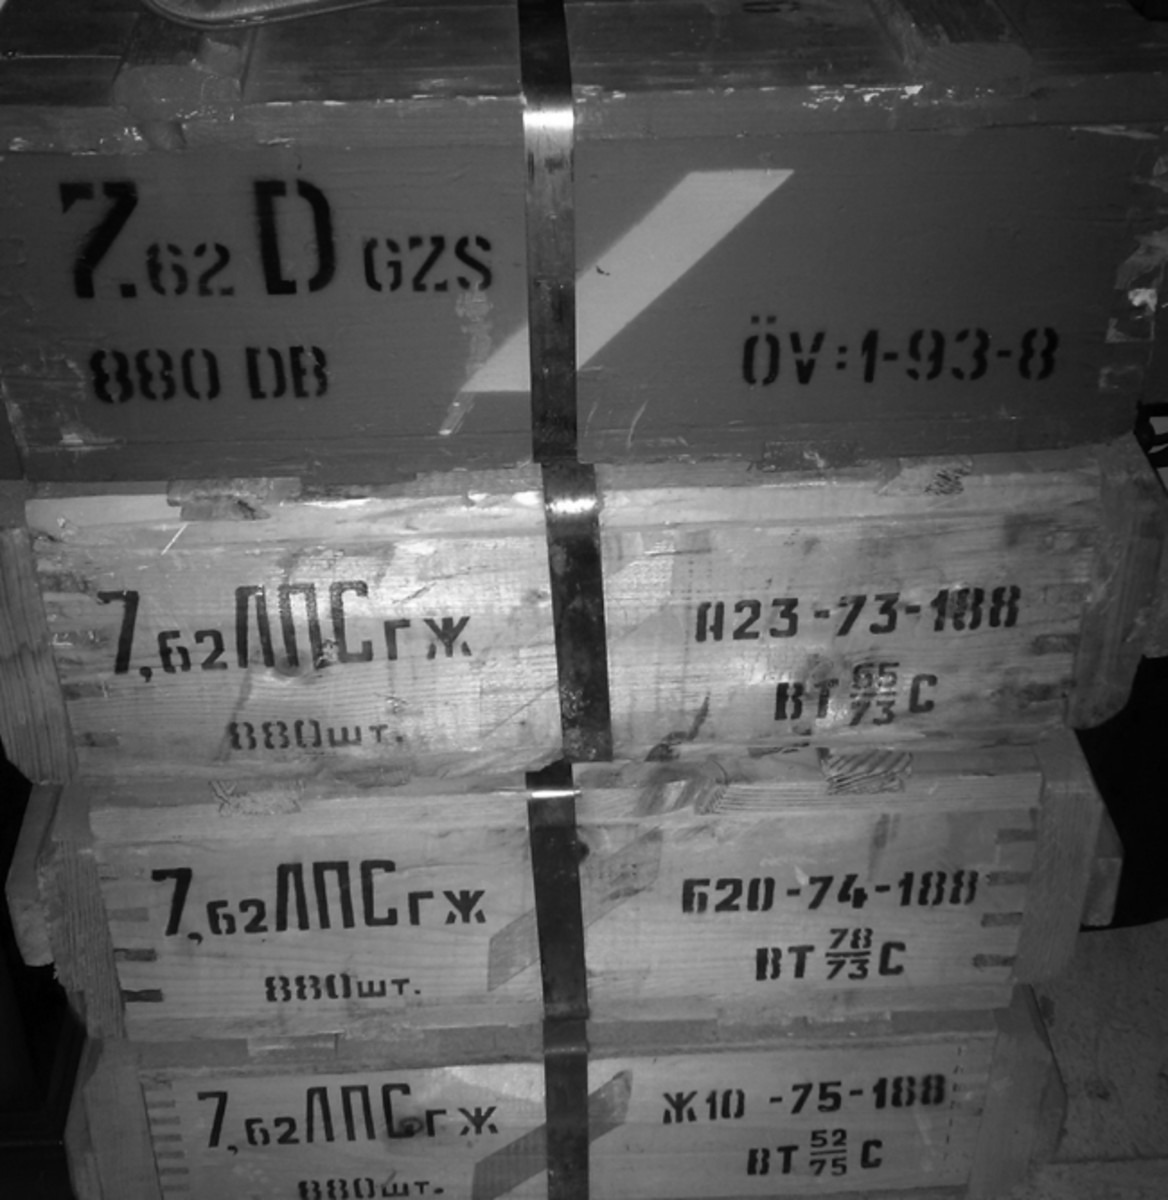 Since the collapse of the Soviet Union, ammunition made for it and other Soviet Bloc nations and allies has flooded the market. Understanding the markings on sealed crates might help you purchase the quality of ammo that you want to shoot, collect, or sell.